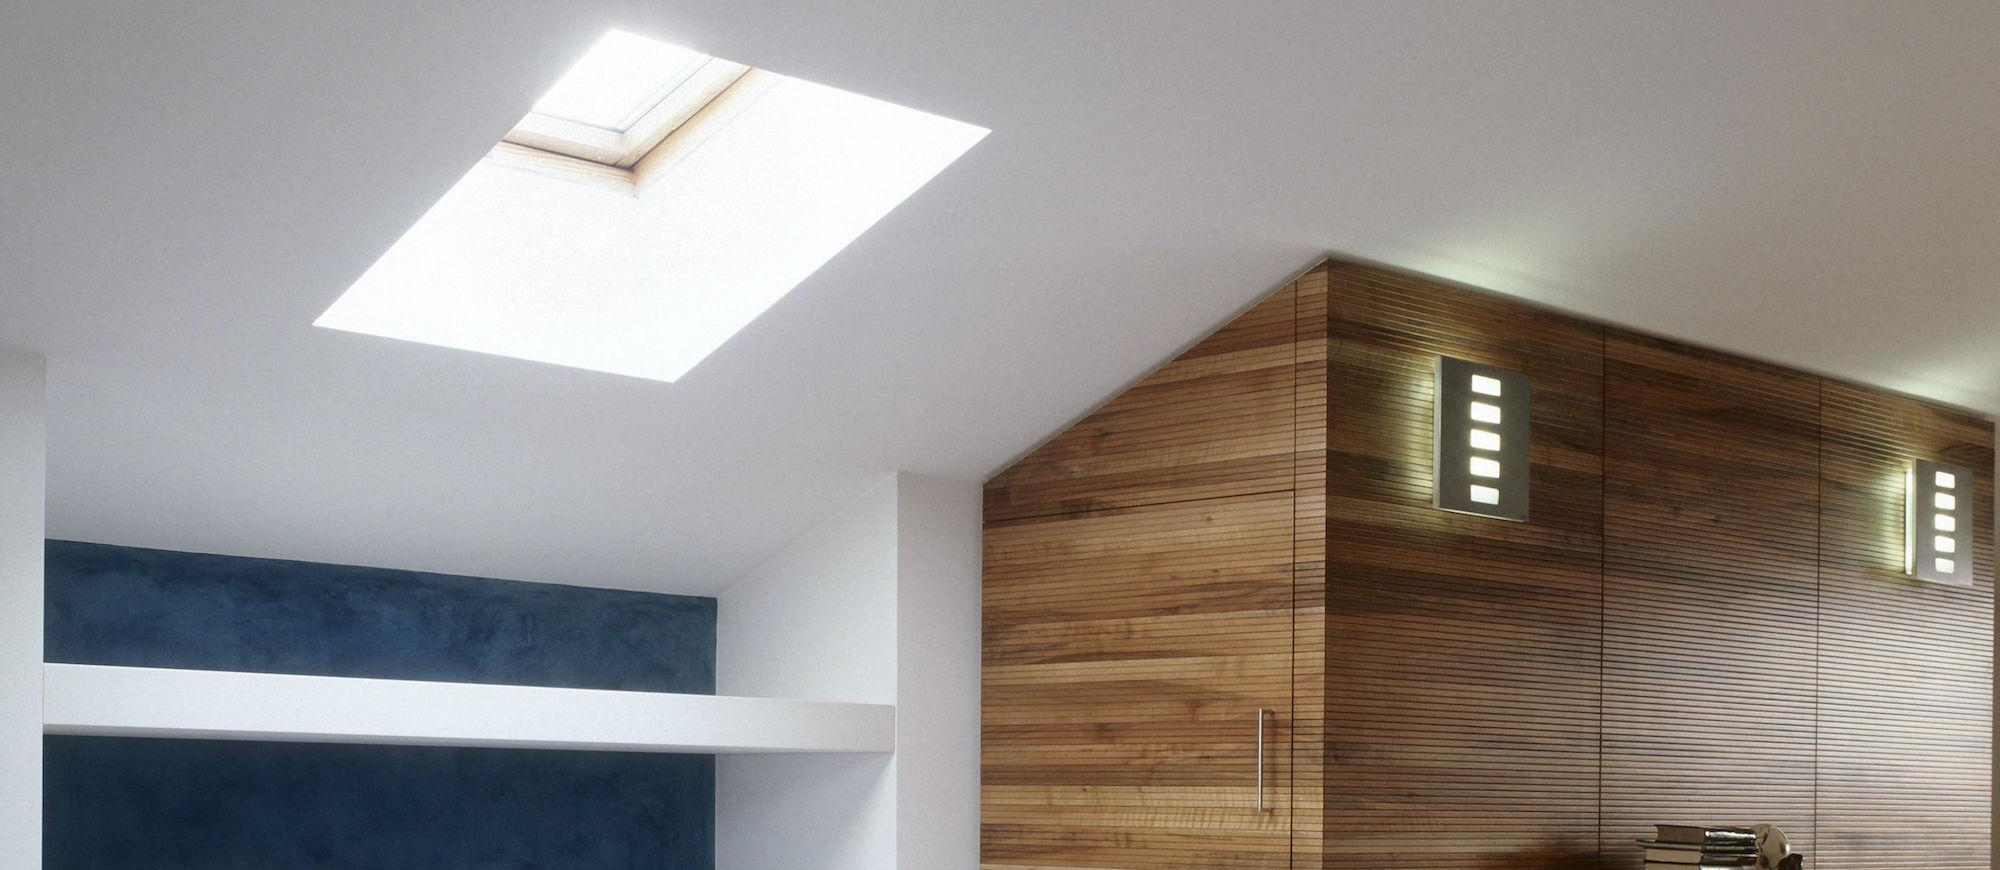 Skylights in the ceiling of a spacious modern living room.